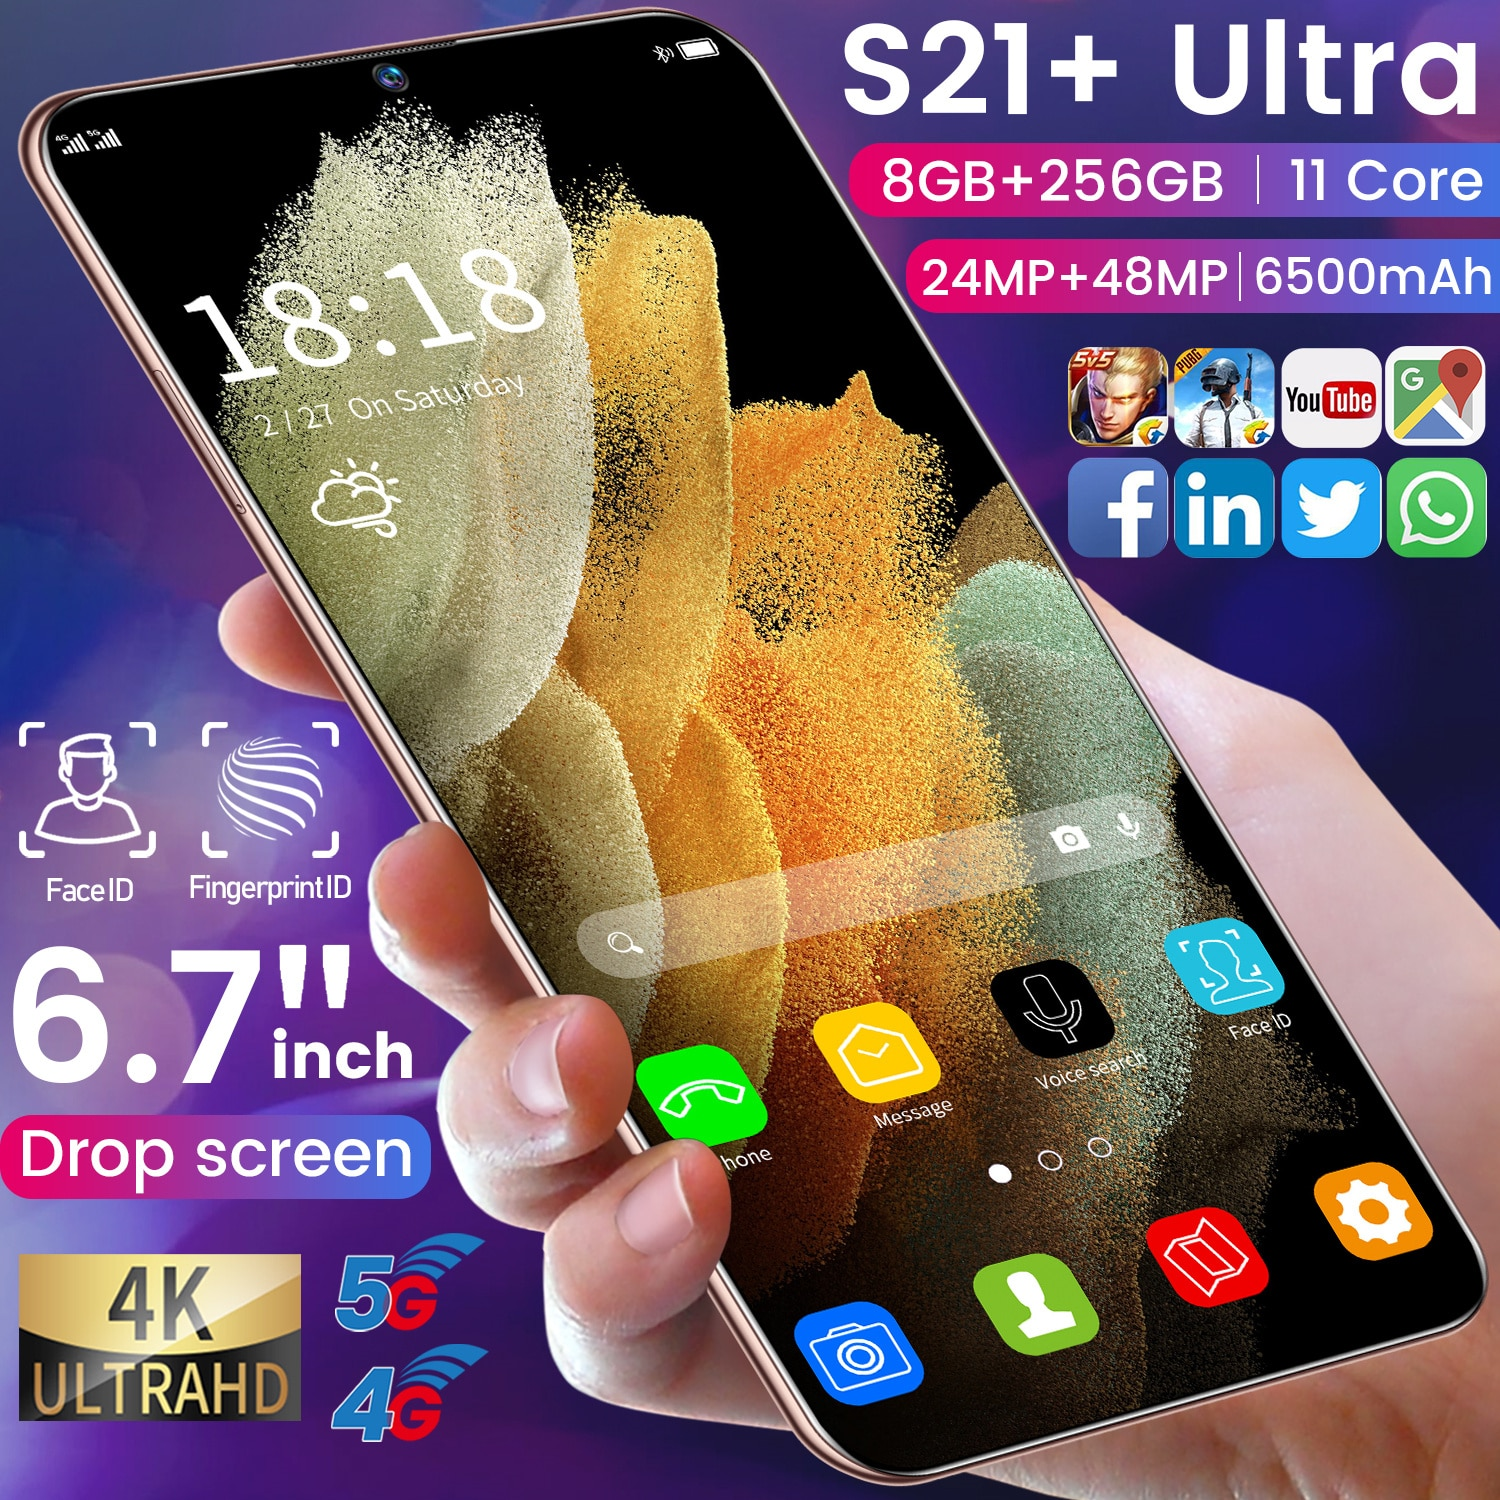 Blue Cell phone 5G  Smartphone S21+Ultra 8GB RAM 256GB ROM Mobile Phone 6.7Inch Face ID Unlocked Android 10.1 System Dual Sim enlarge